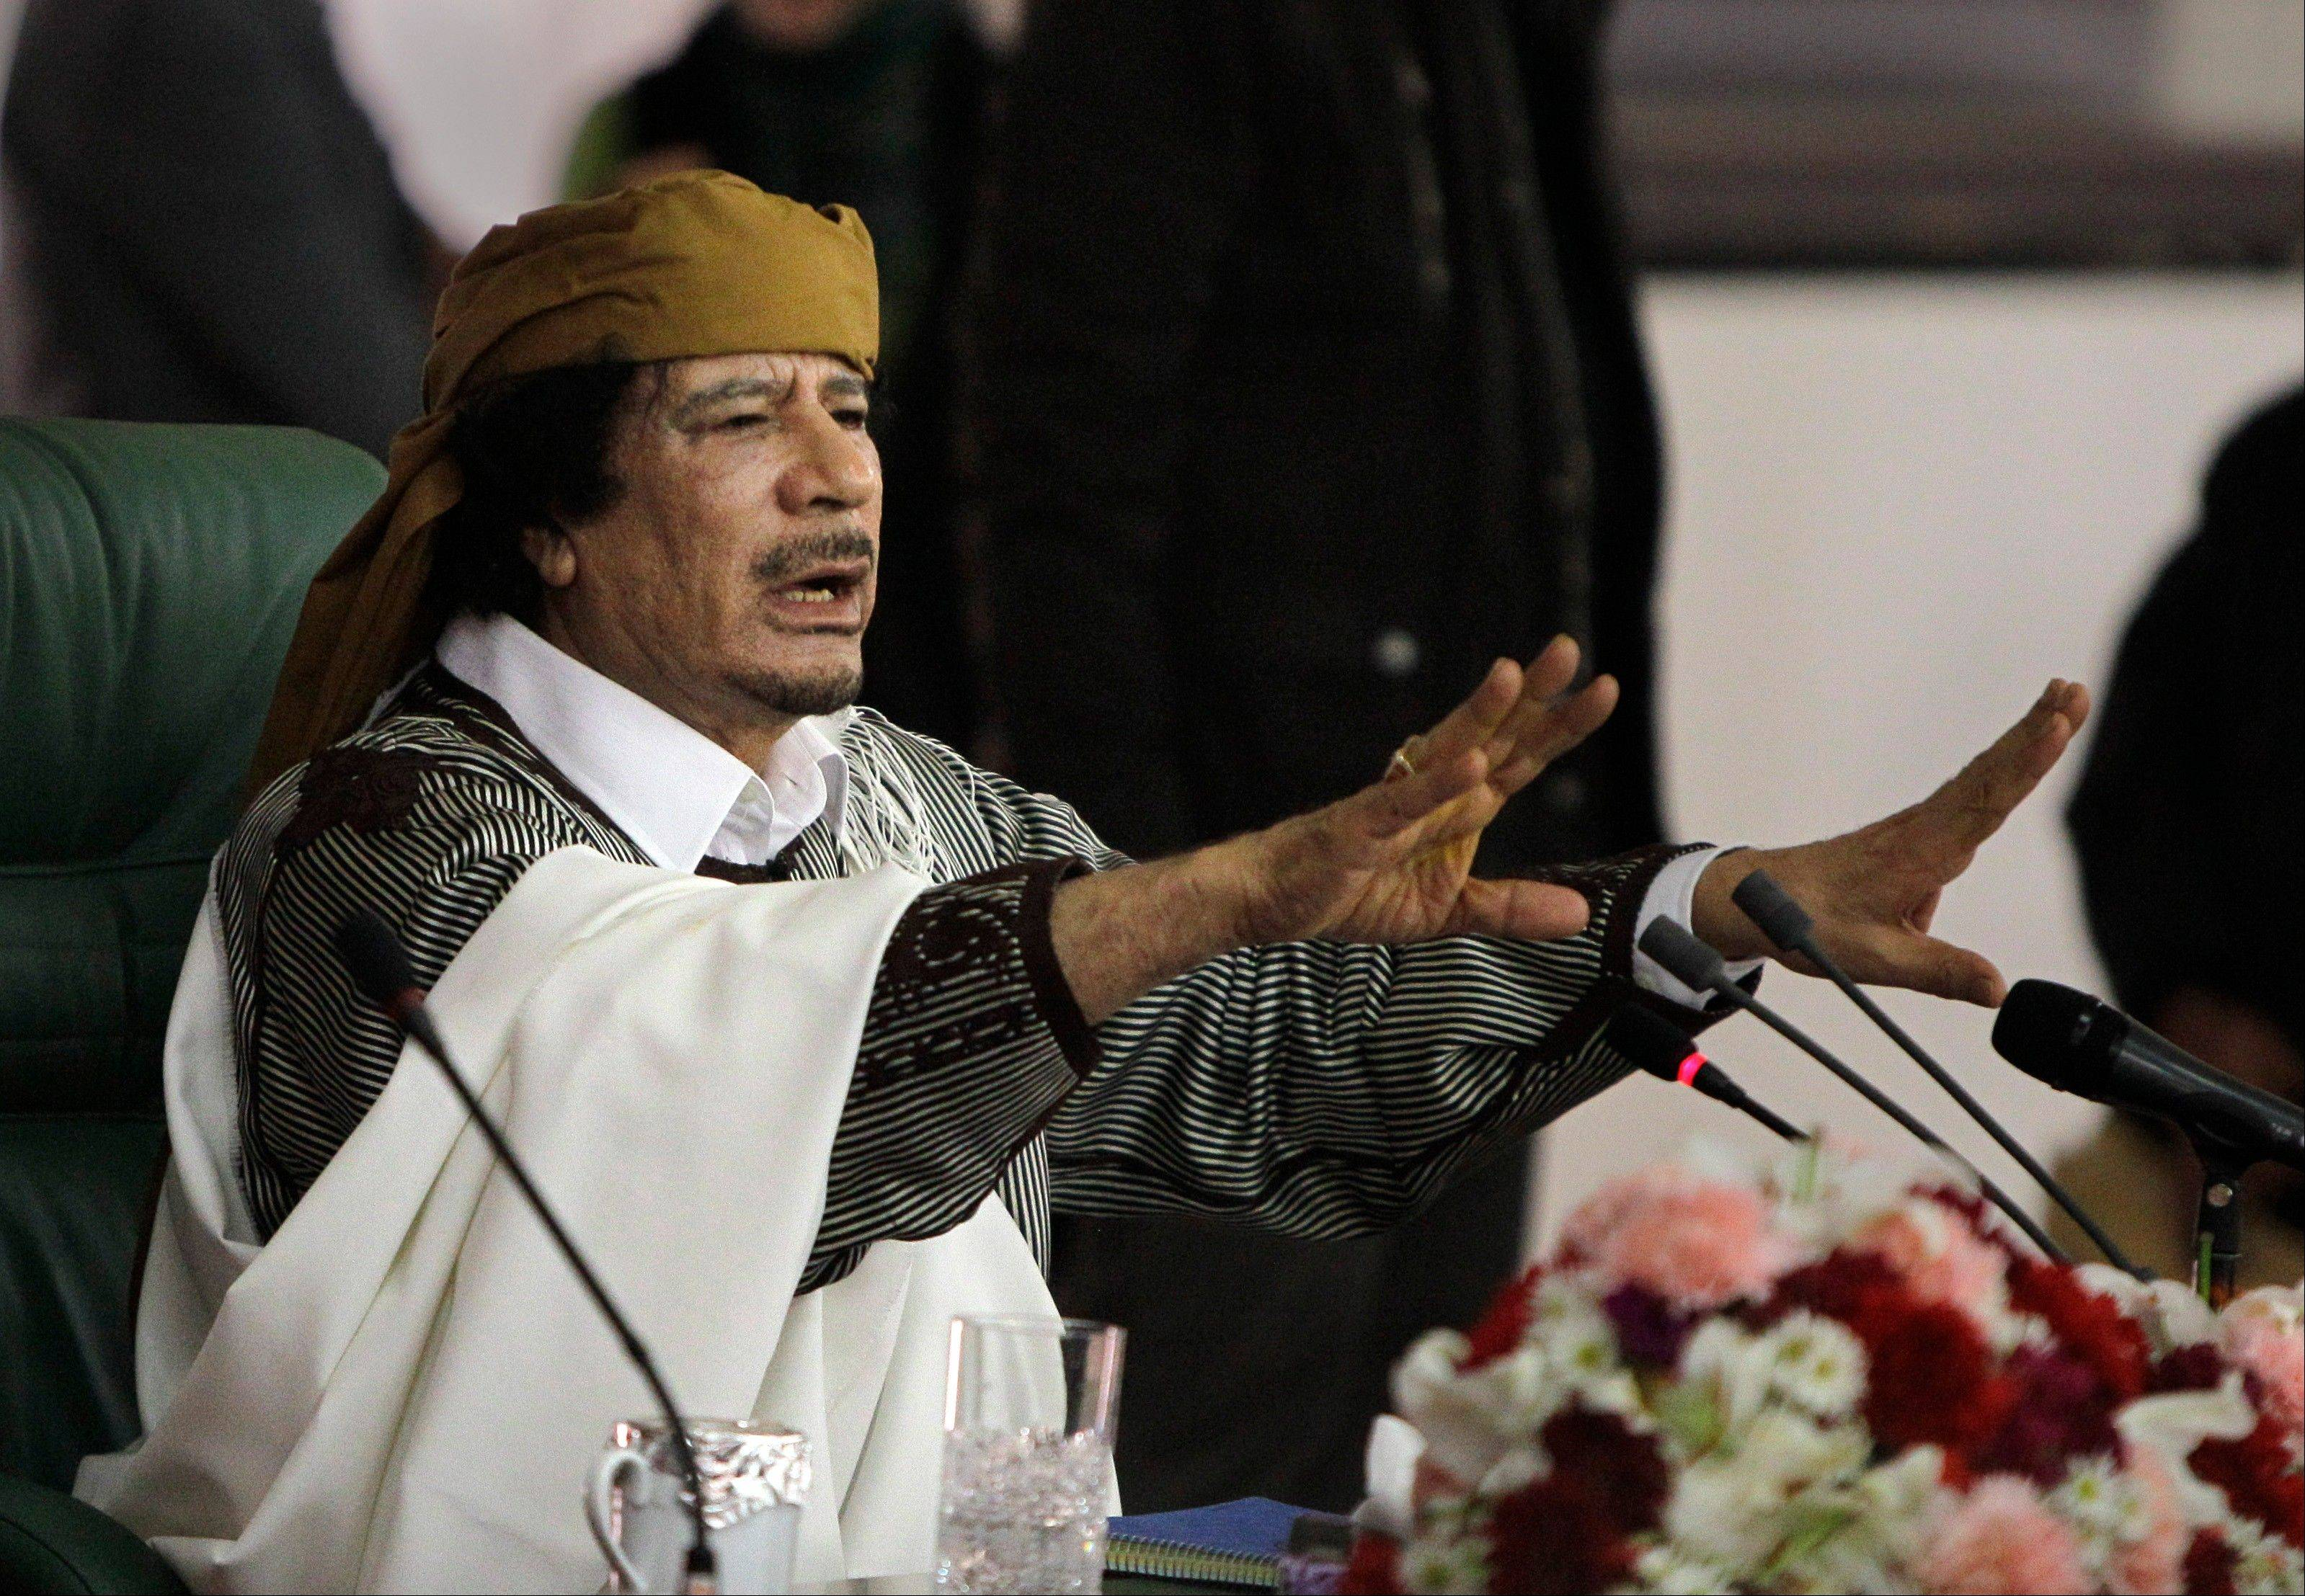 In this March 2, 2011 file photo, Libyan Leader Moammar Gadhafi gestures to supporters as he speaks in Tripoli, Libya.